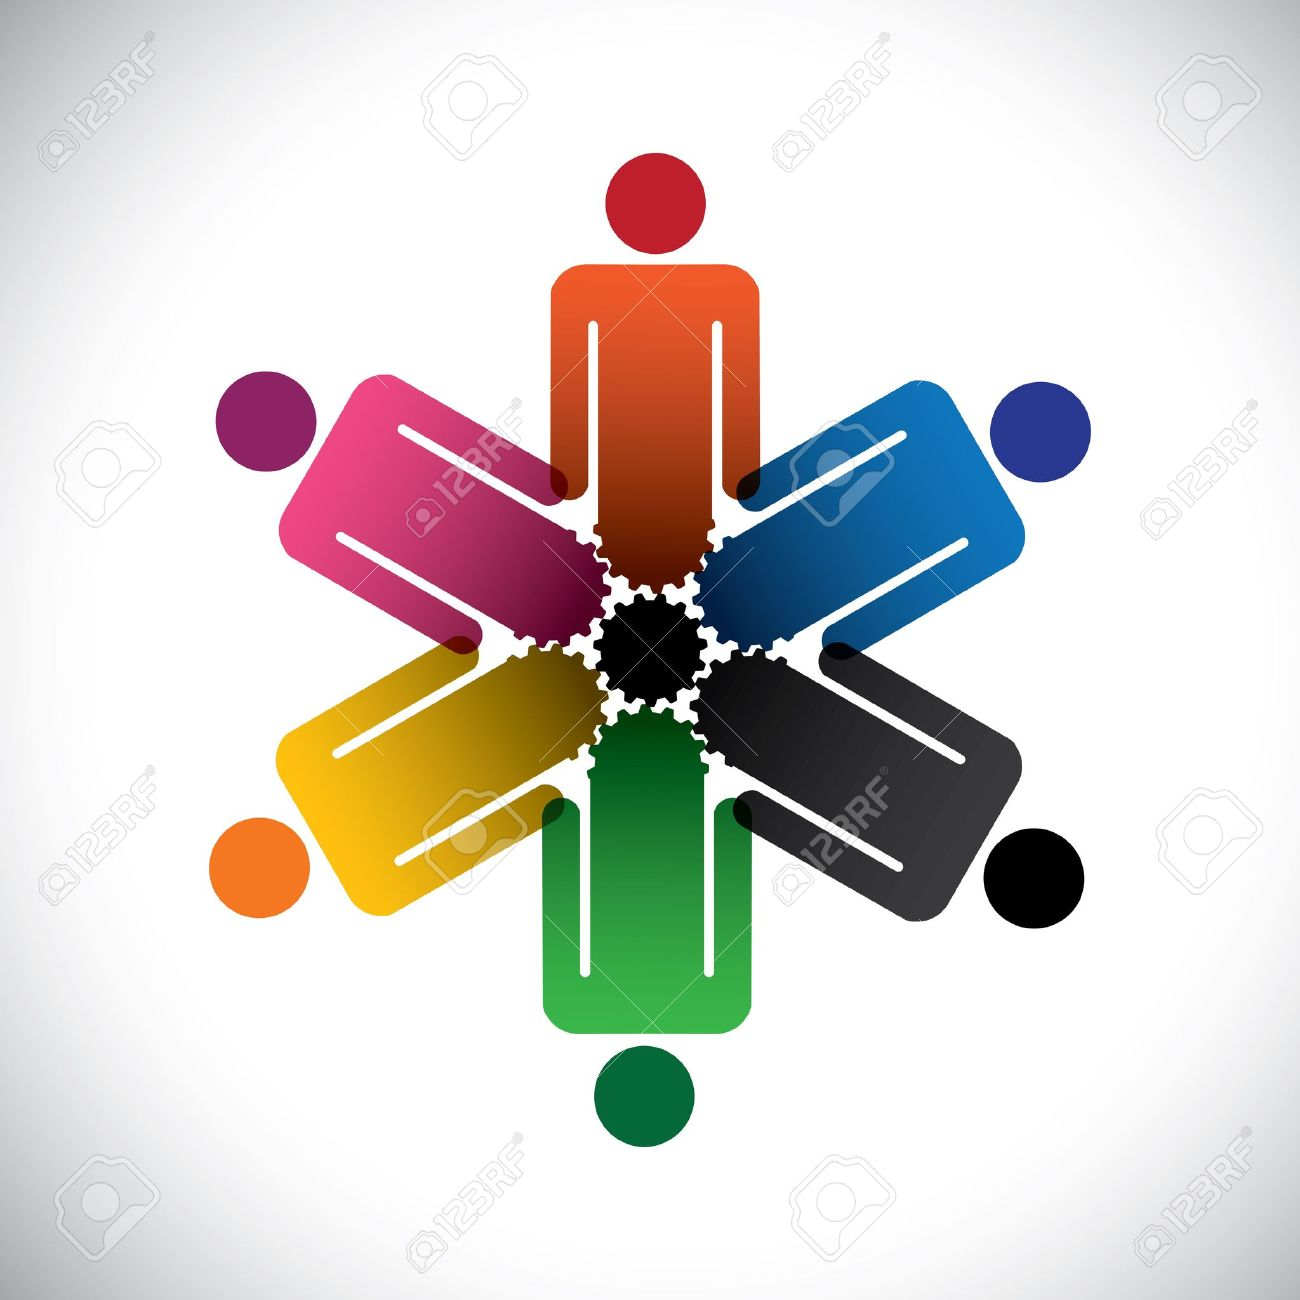 Colorful abstract people community as cog wheels simple graphic colorful abstract people community as cog wheels simple graphic this illustration can also represent sciox Gallery